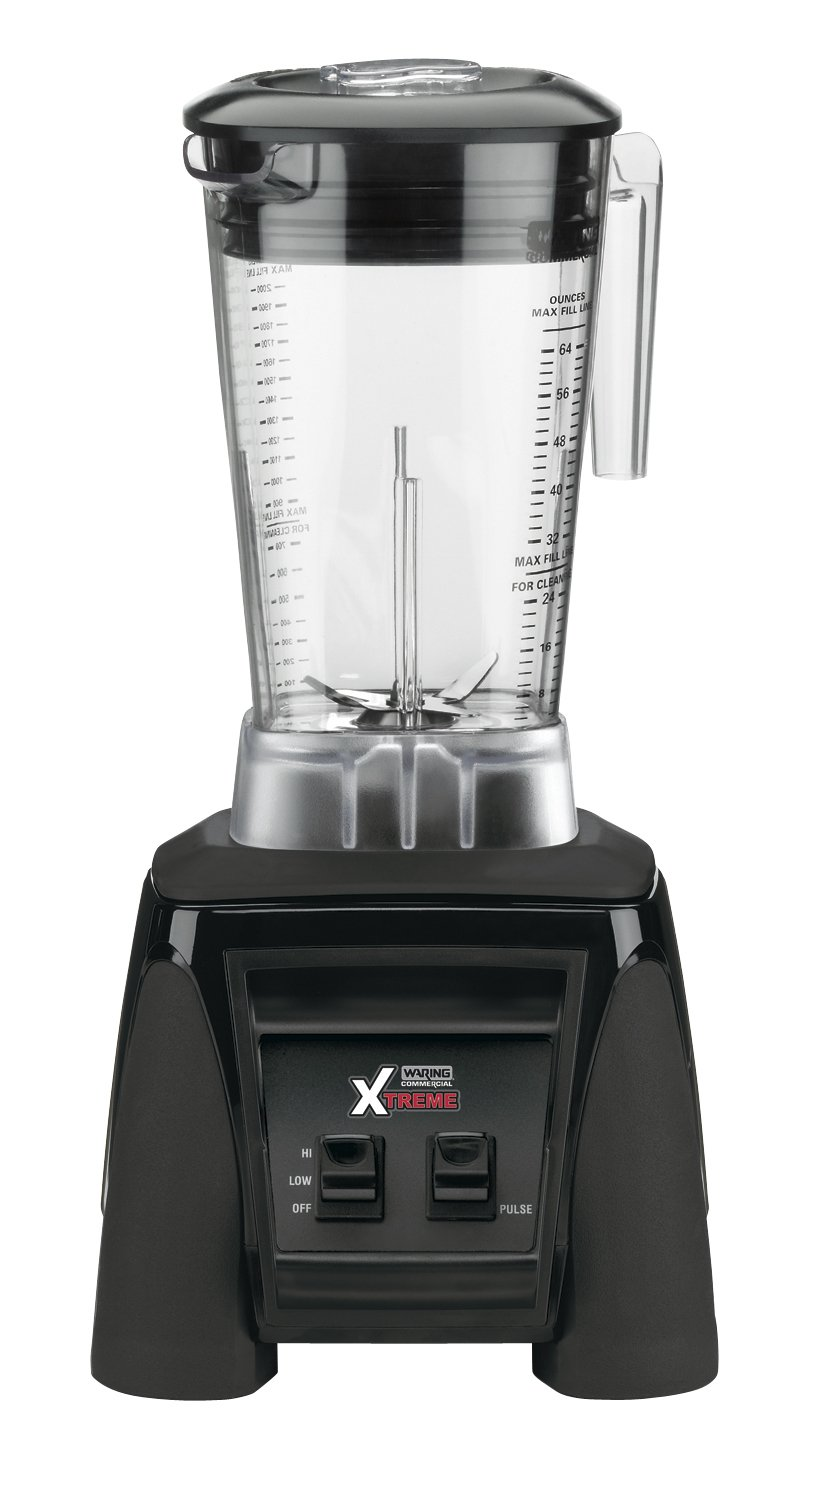 Waring(MX1000XTX) 64 oz Commercial Blender - Xtreme Hi-Power Series